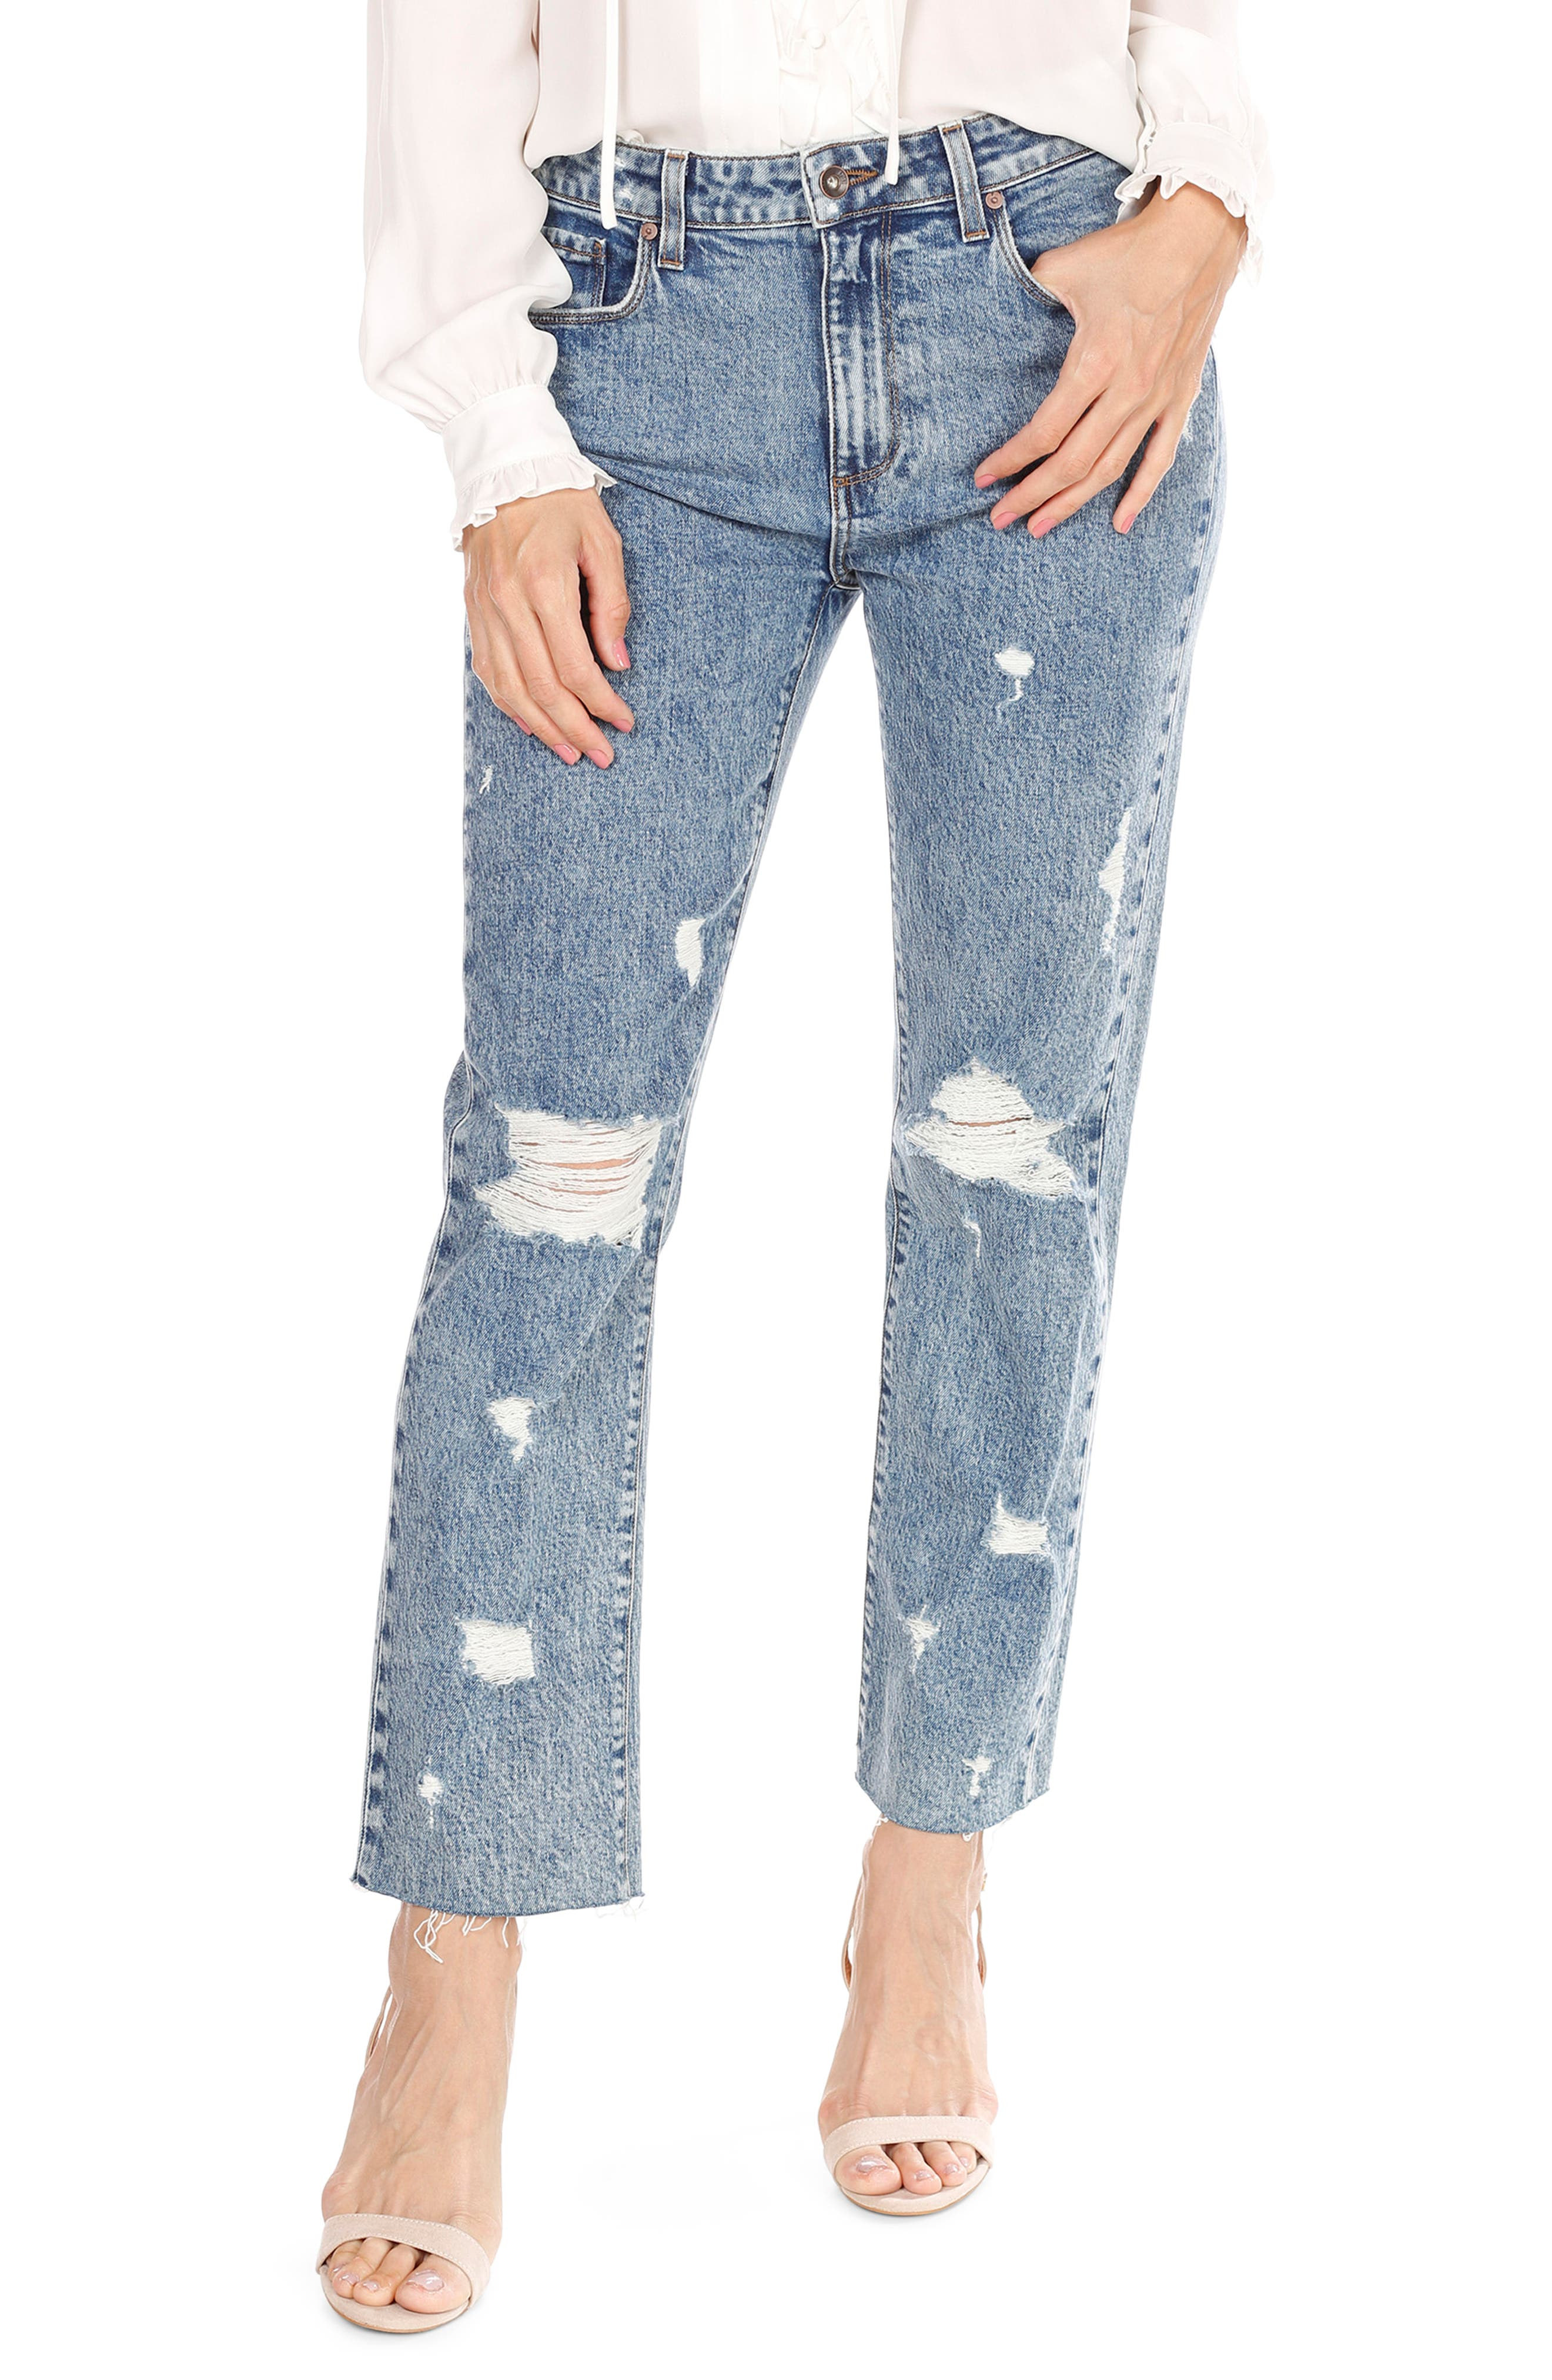 Noella Straight Leg Crop Jeans,                             Main thumbnail 1, color,                             Westlyn Destructed